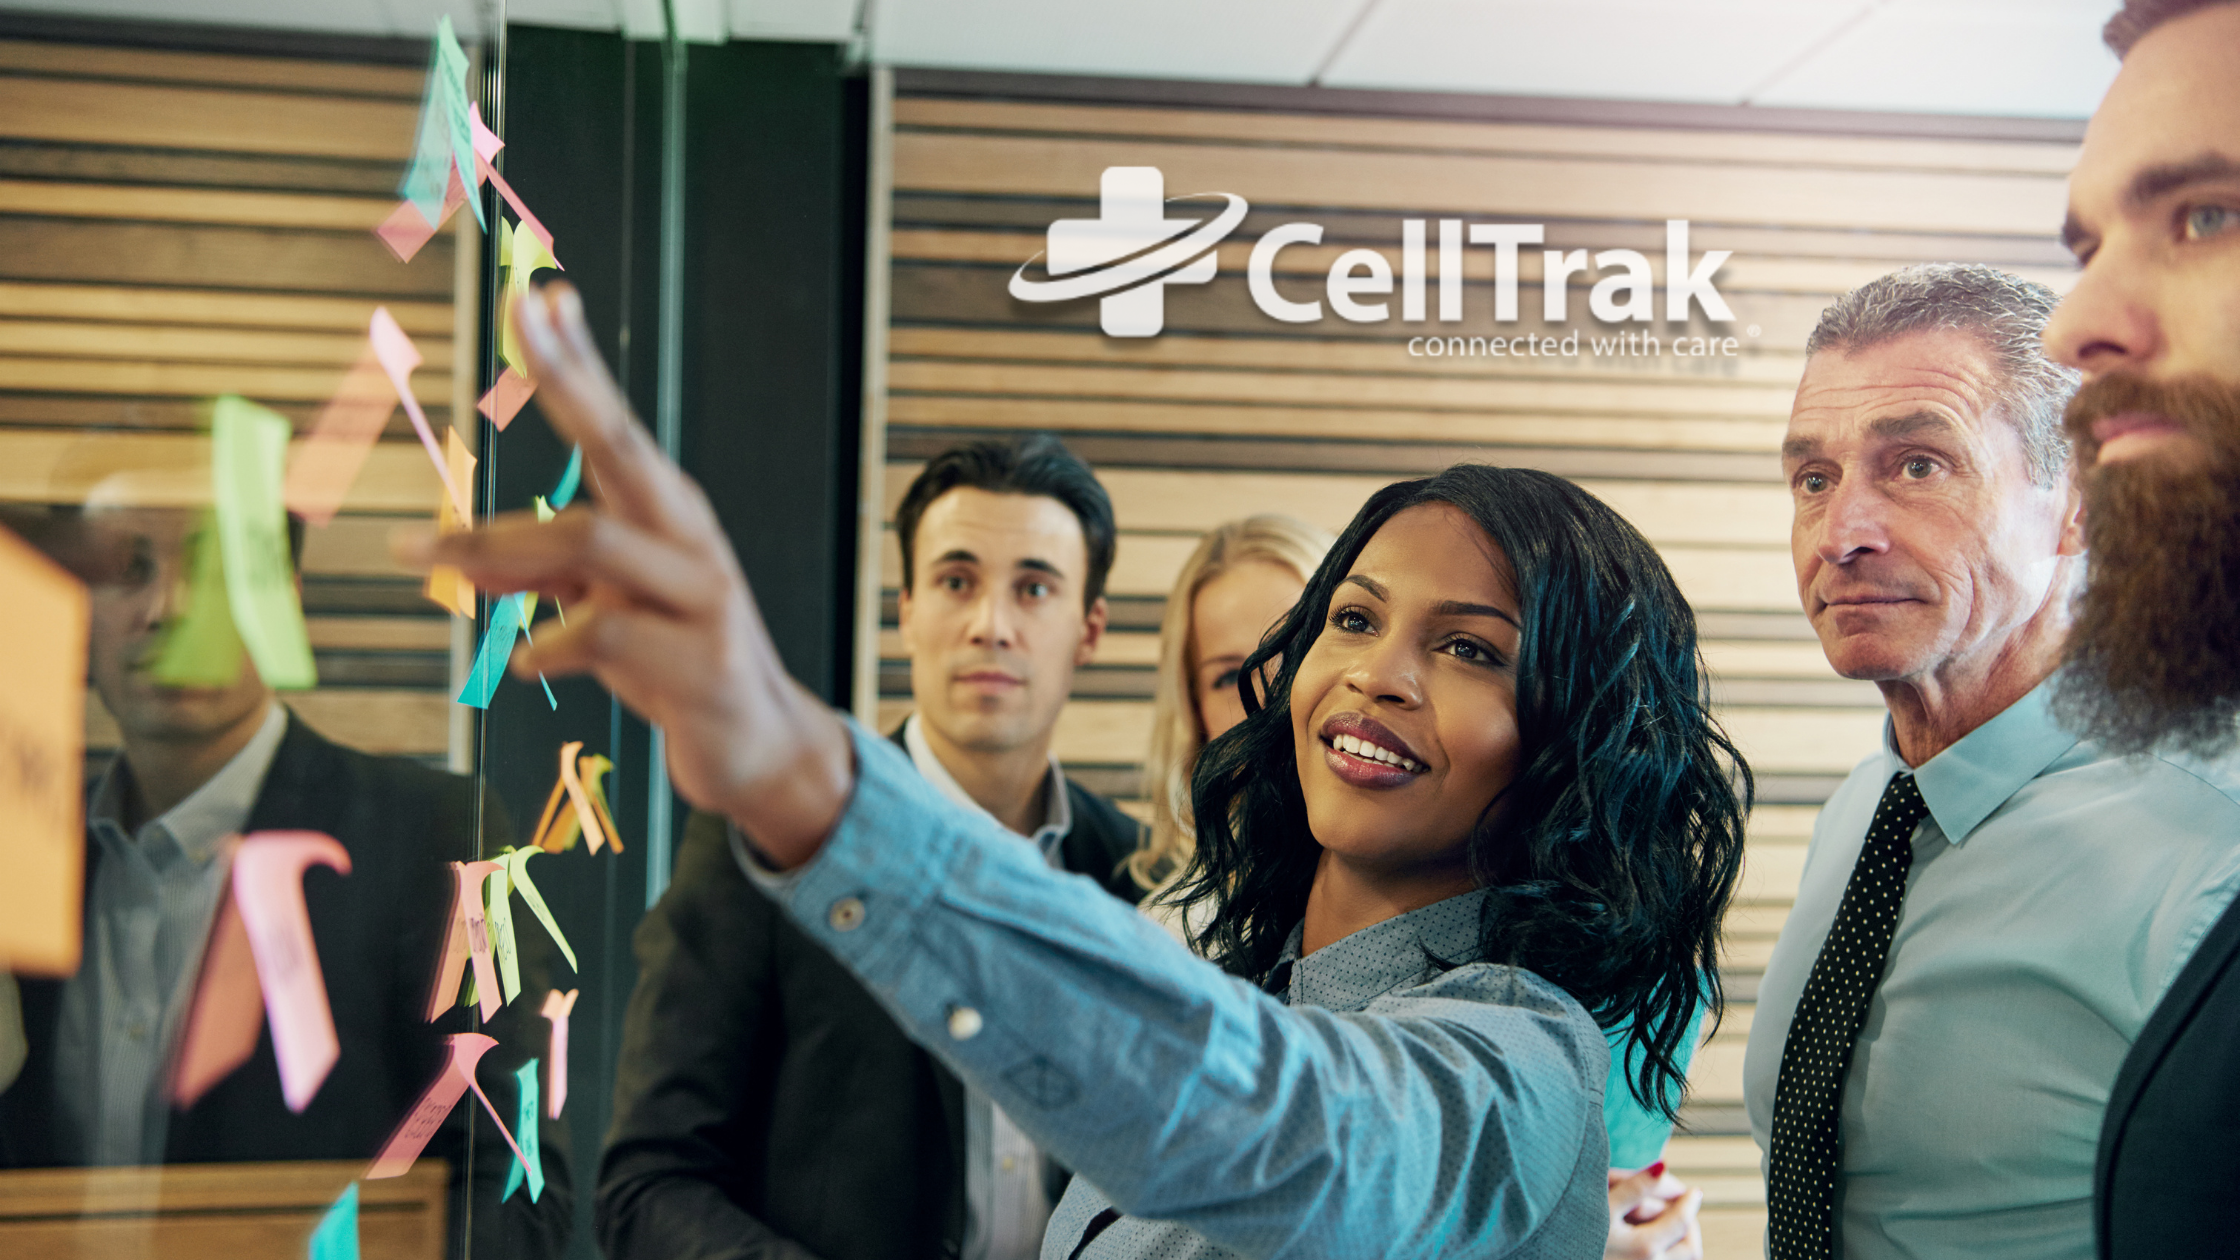 people working together in a meeting with celltrak logo in the background